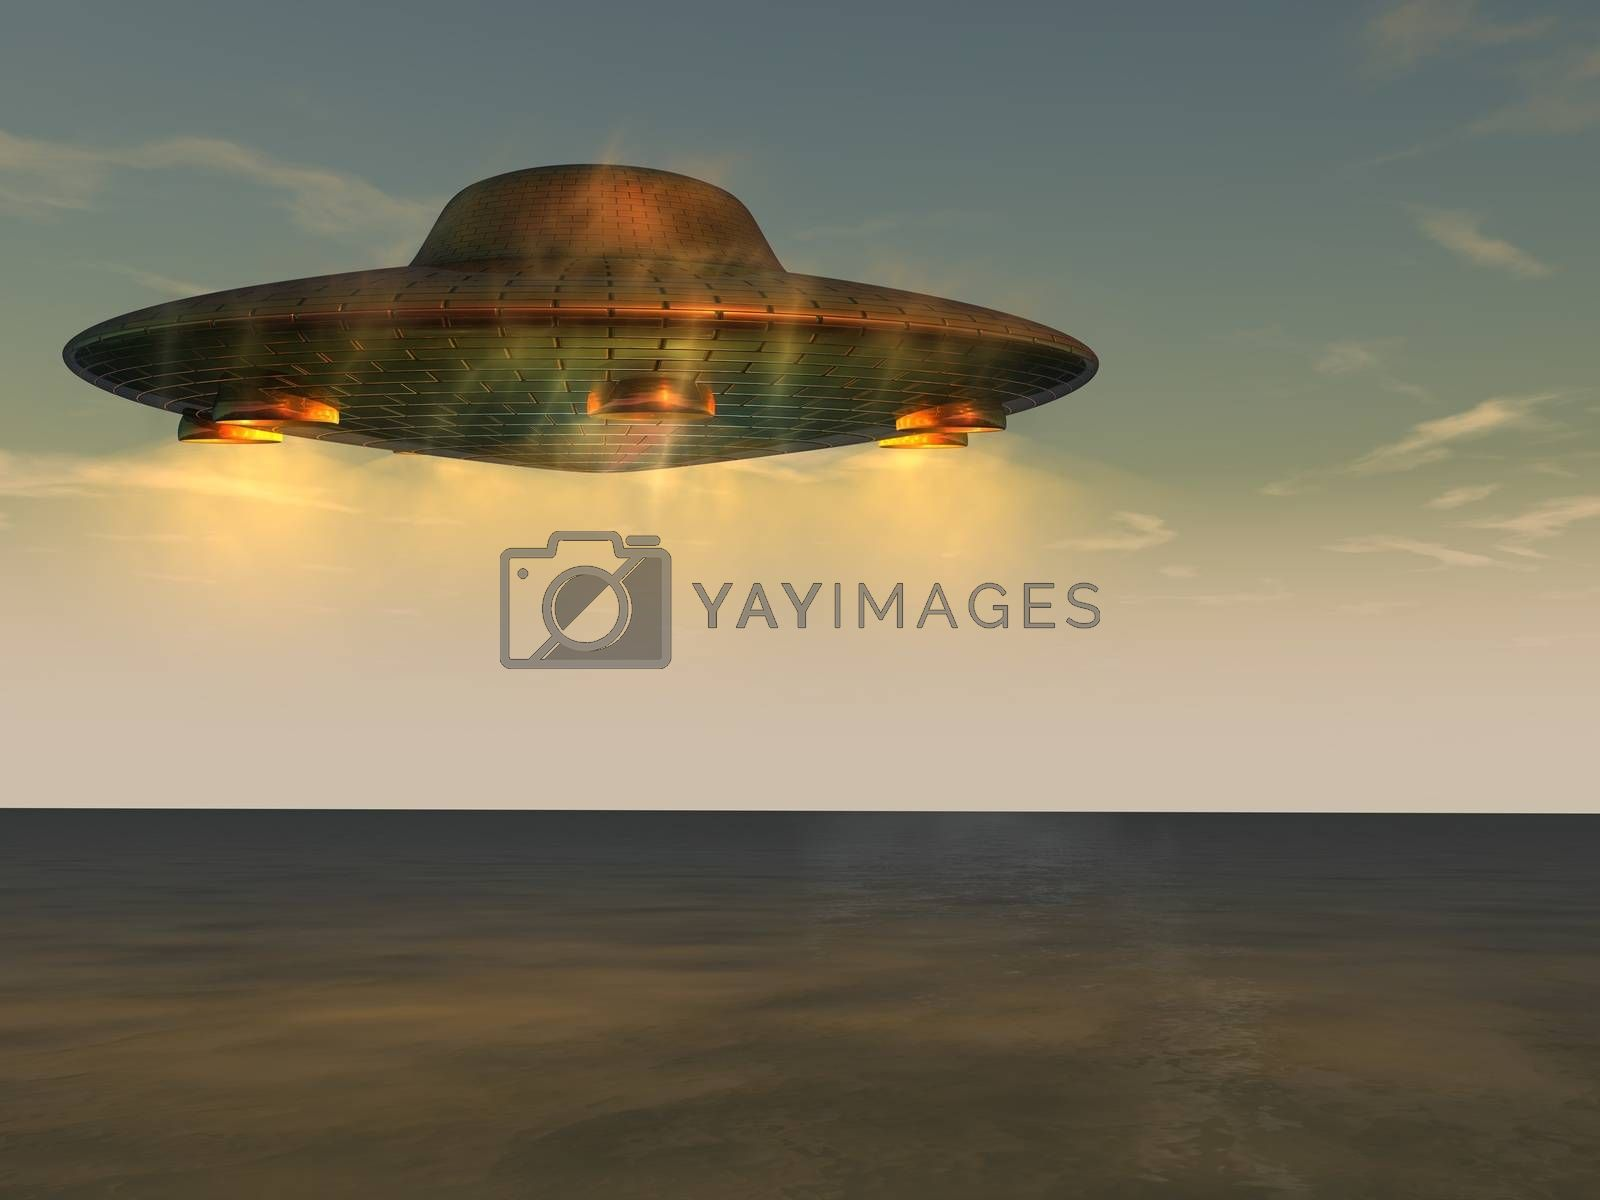 Computer generated 3D illustration of UFO - Unidentified Flying Object on the sky above the sea level. Theme of visit from space, future of technology, scifi.